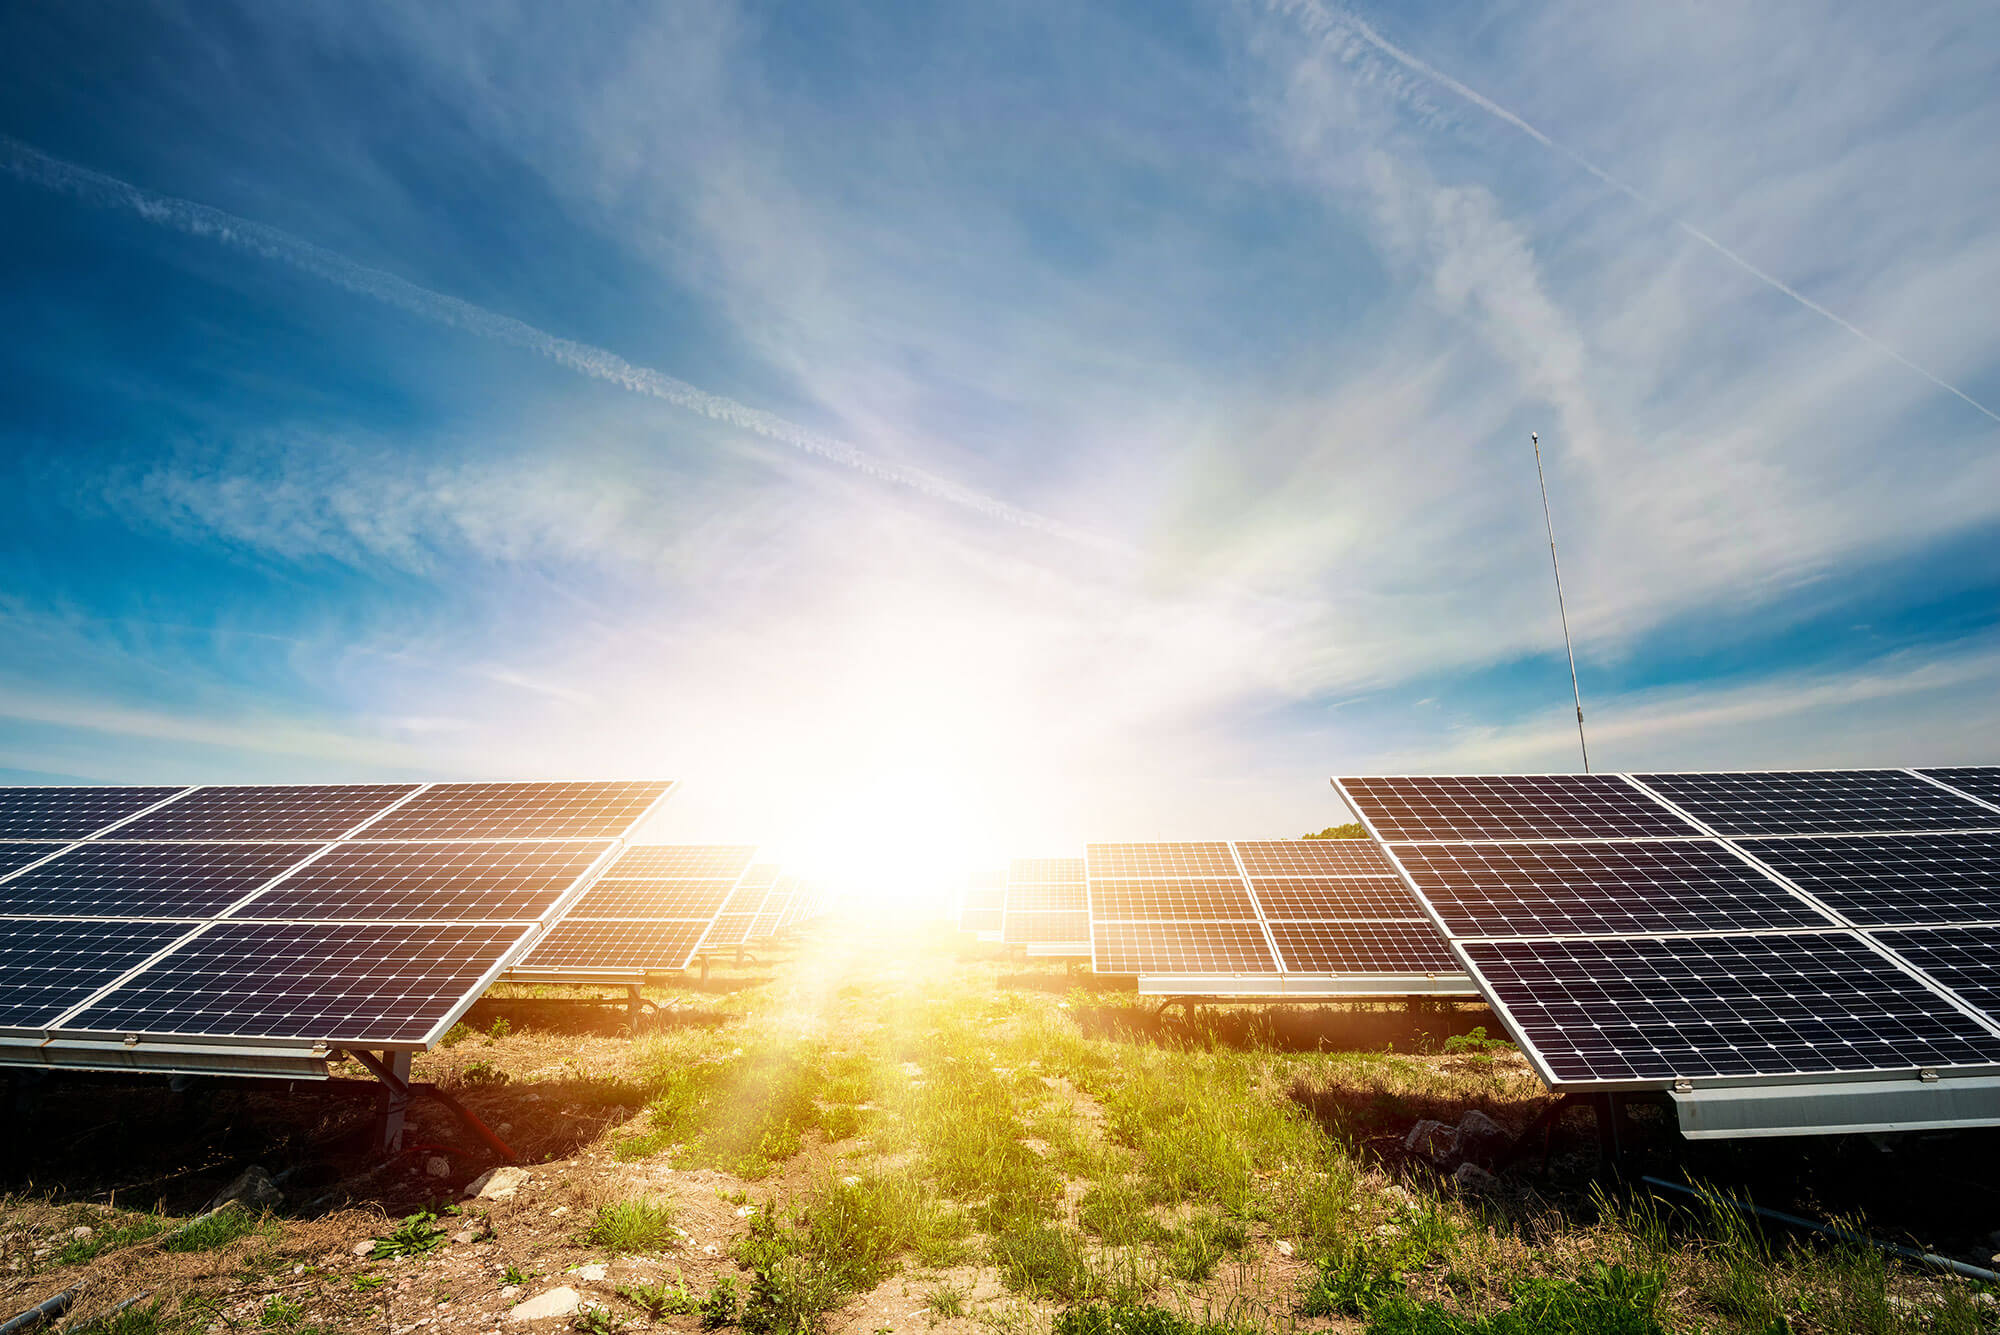 Why is solar energy not used commonly?